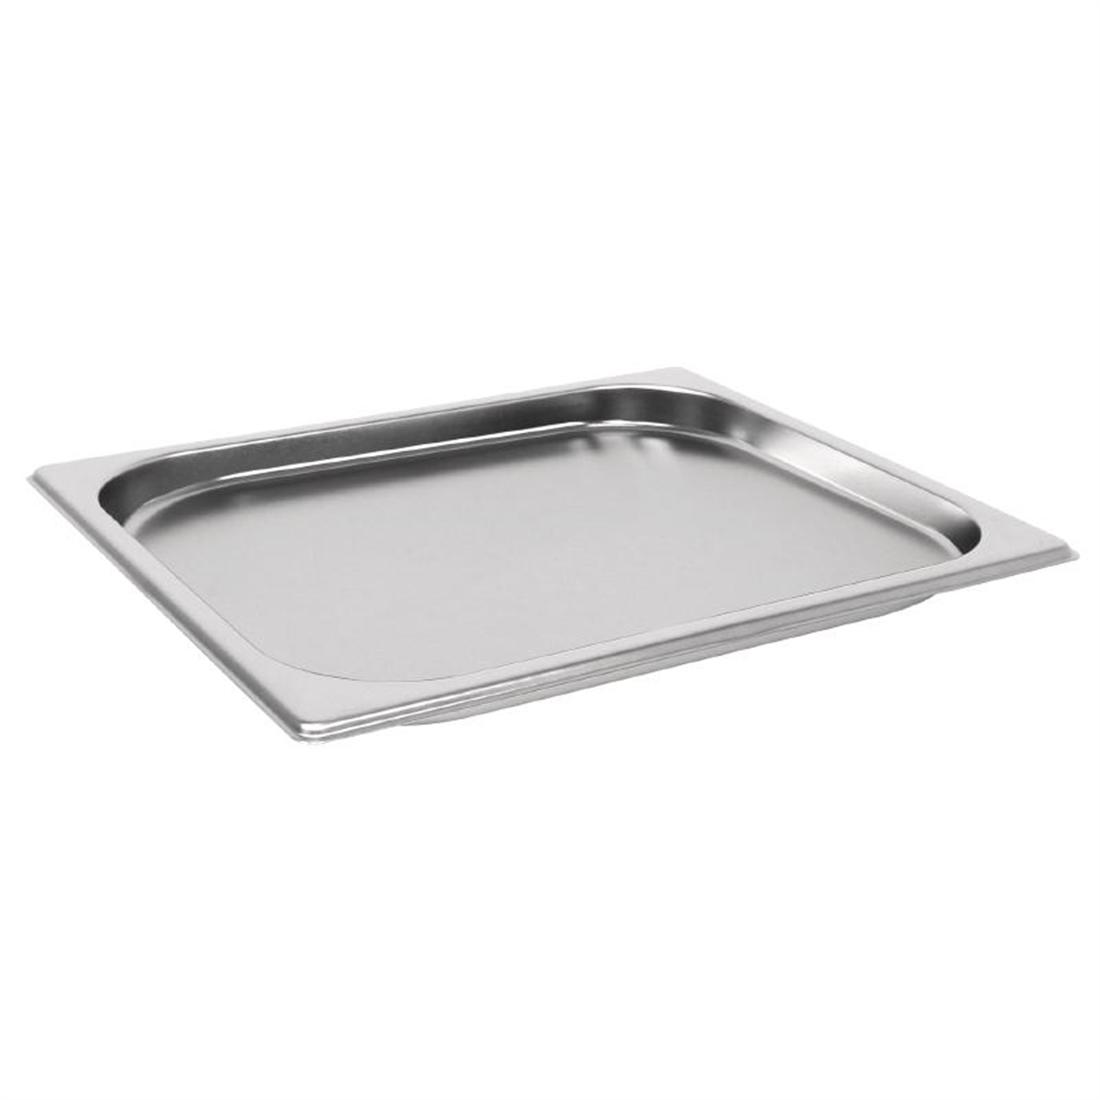 GM320 - Vogue Heavy Duty Stainless Steel 1/2 Gastronorm Pan 20mm - Each - GM320